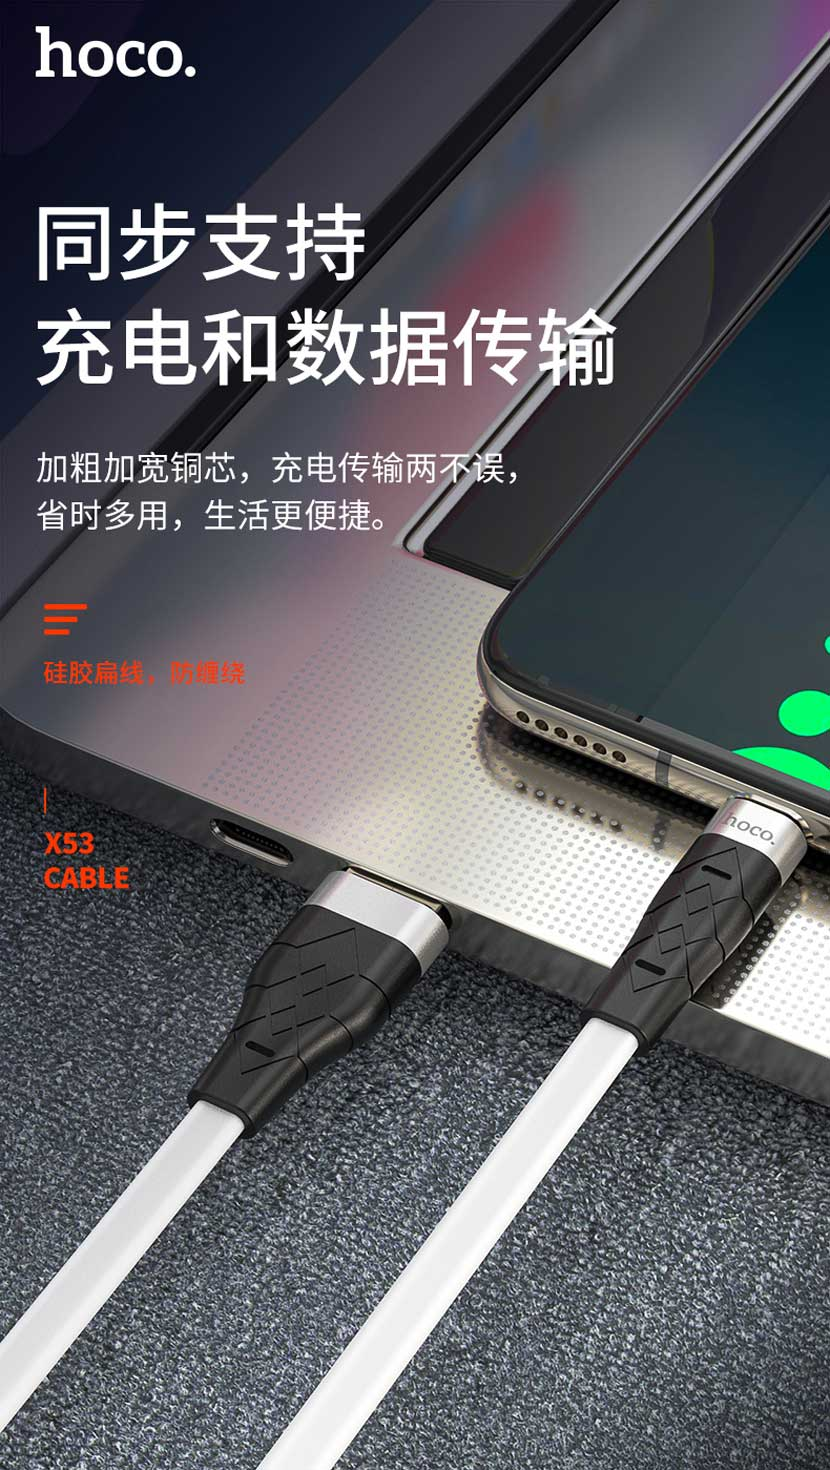 hoco news x53 angel silicone charging data cable sync cn